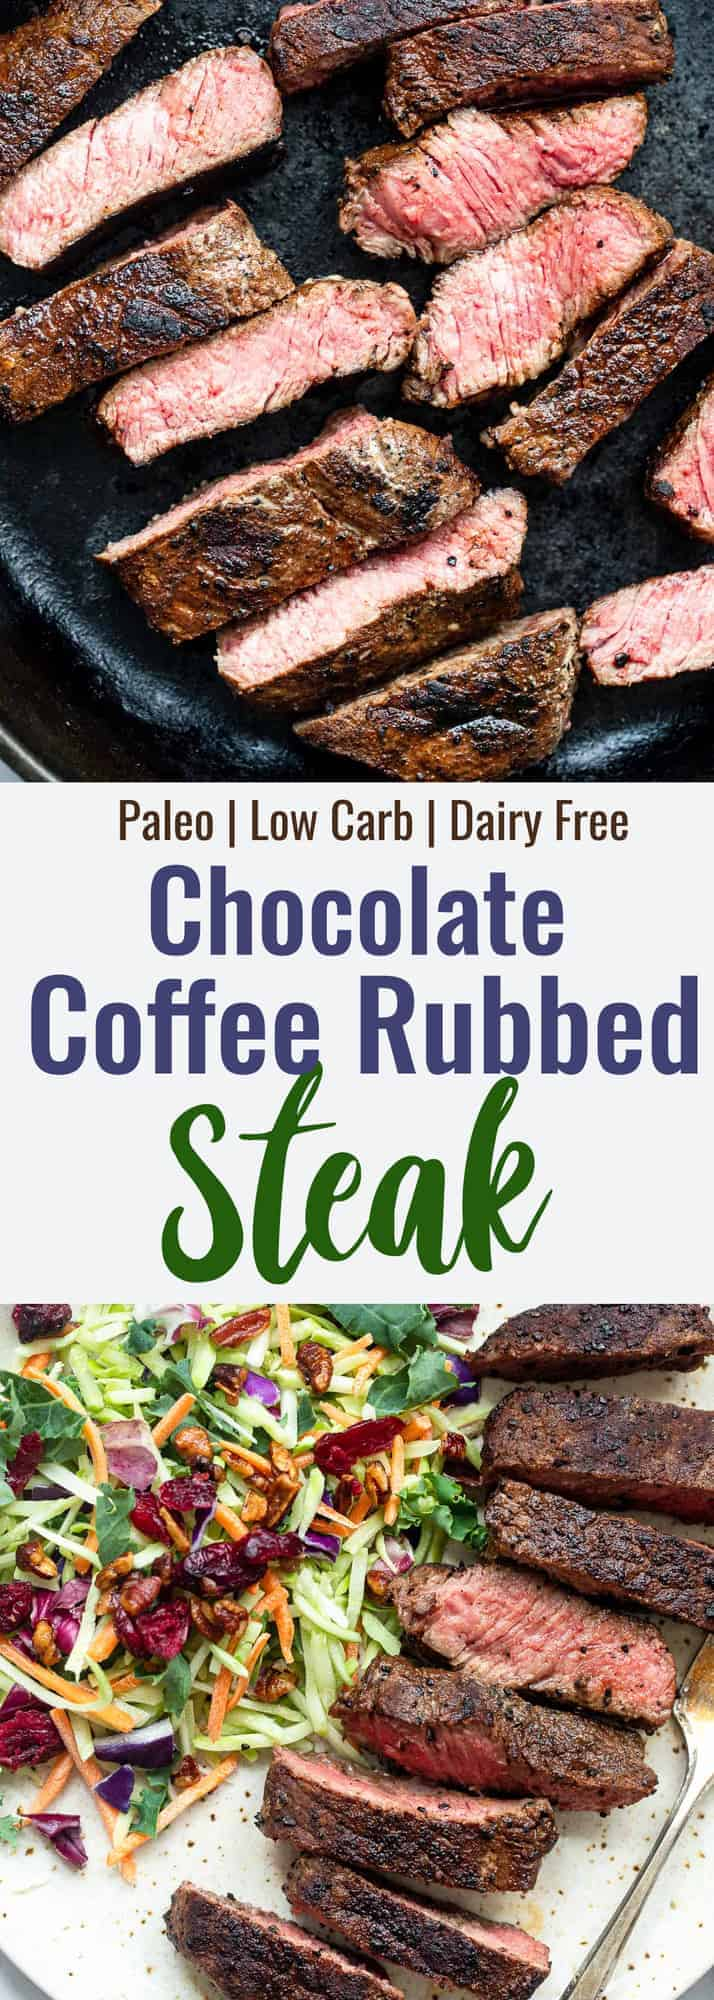 simple coffee rubbed steak image nocompress